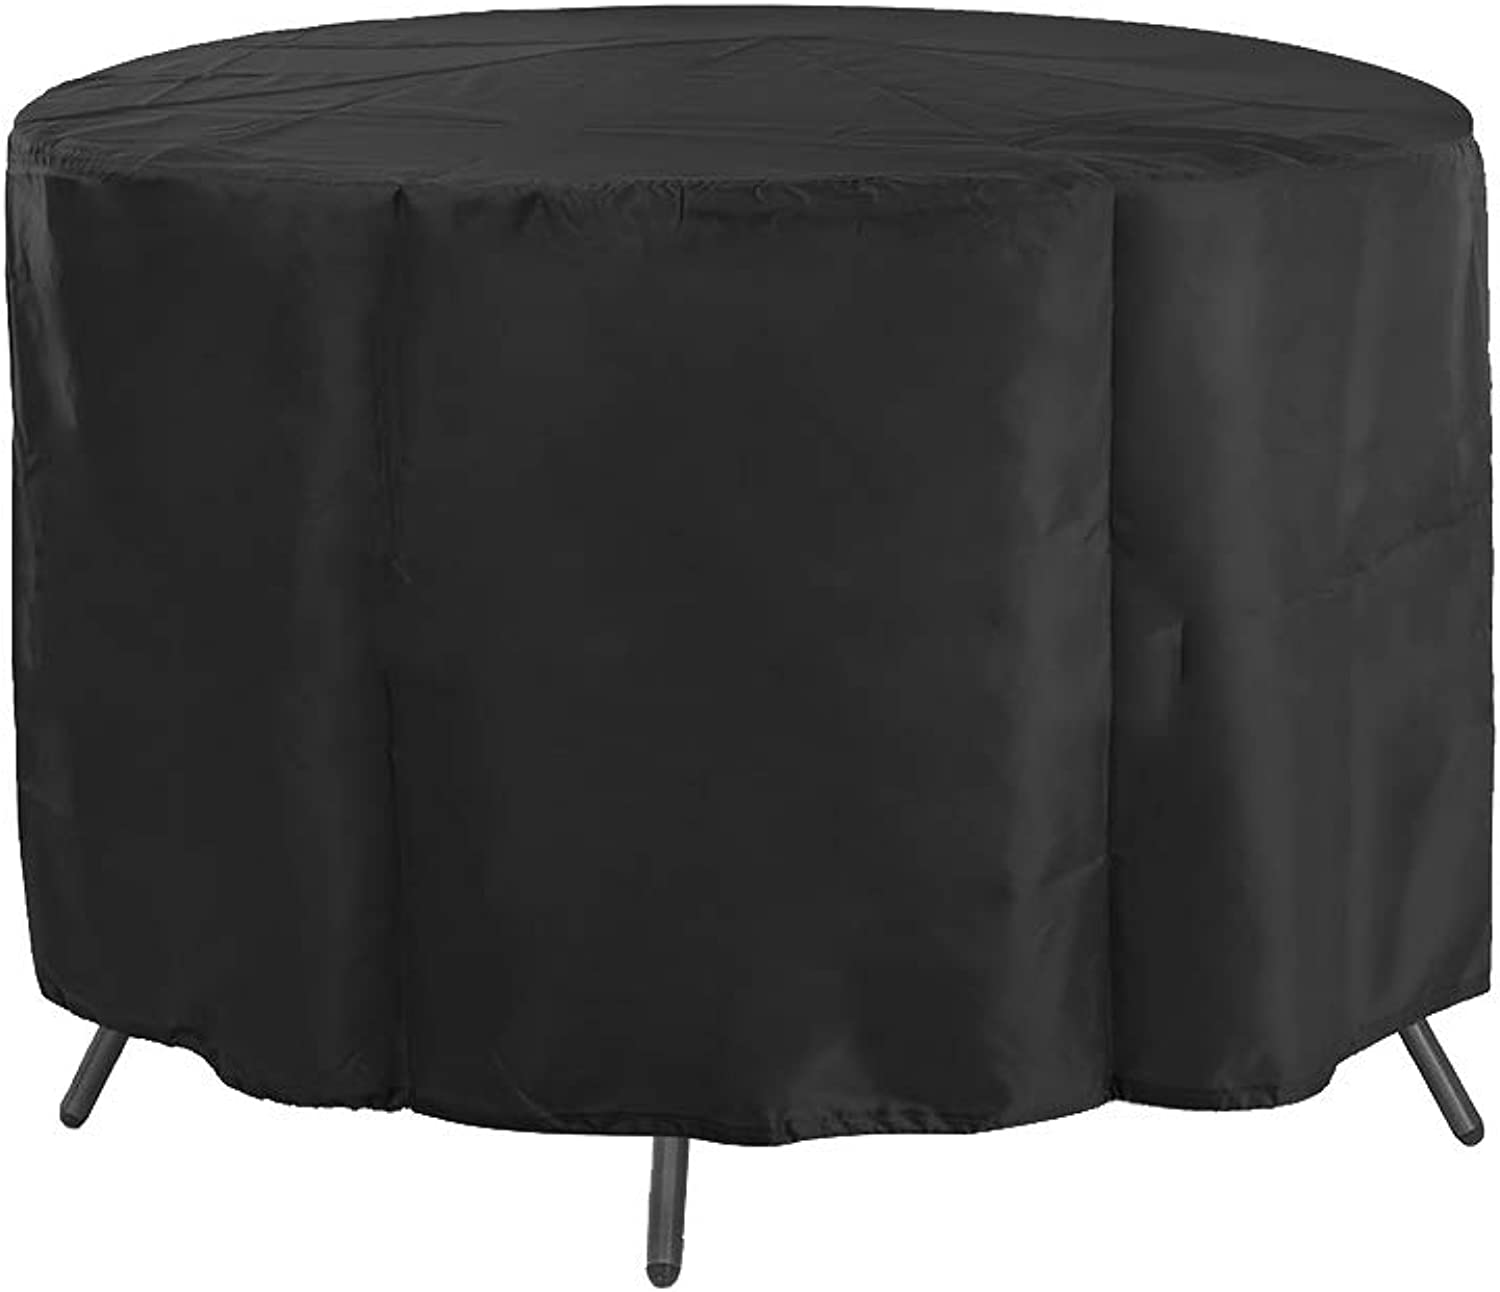 Dust GuardDust Cover Predective Cover Furniture Cover, Waterproof Dust-Proof Anti-UV Black 128  71cm, Suitable for Outdoor Garden Oxford Cloth